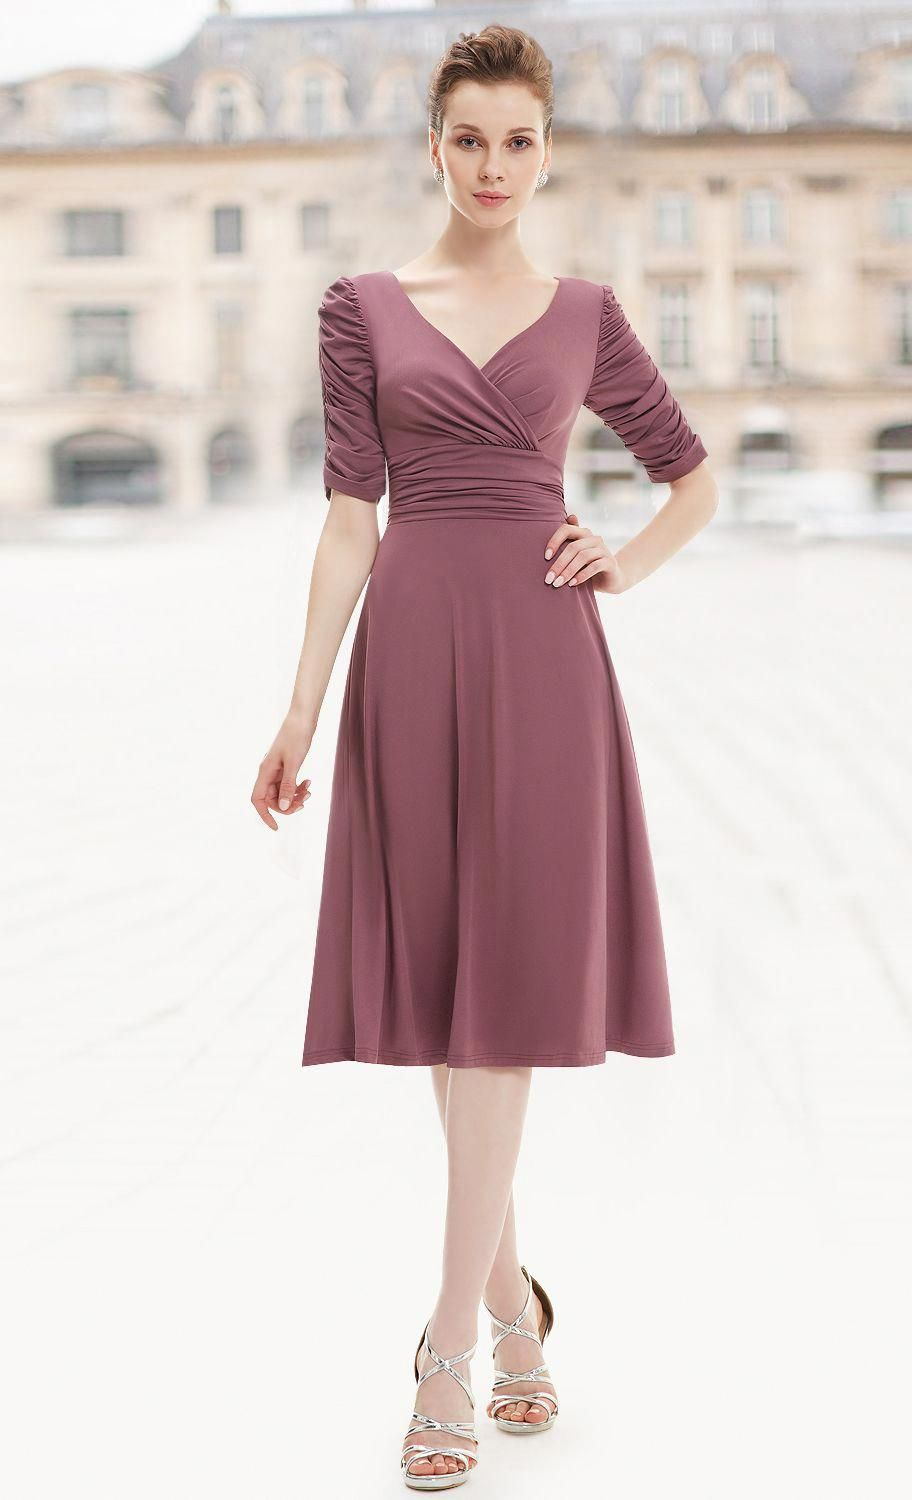 EverPretty 3/4 sleeve dress, one dress suit for any